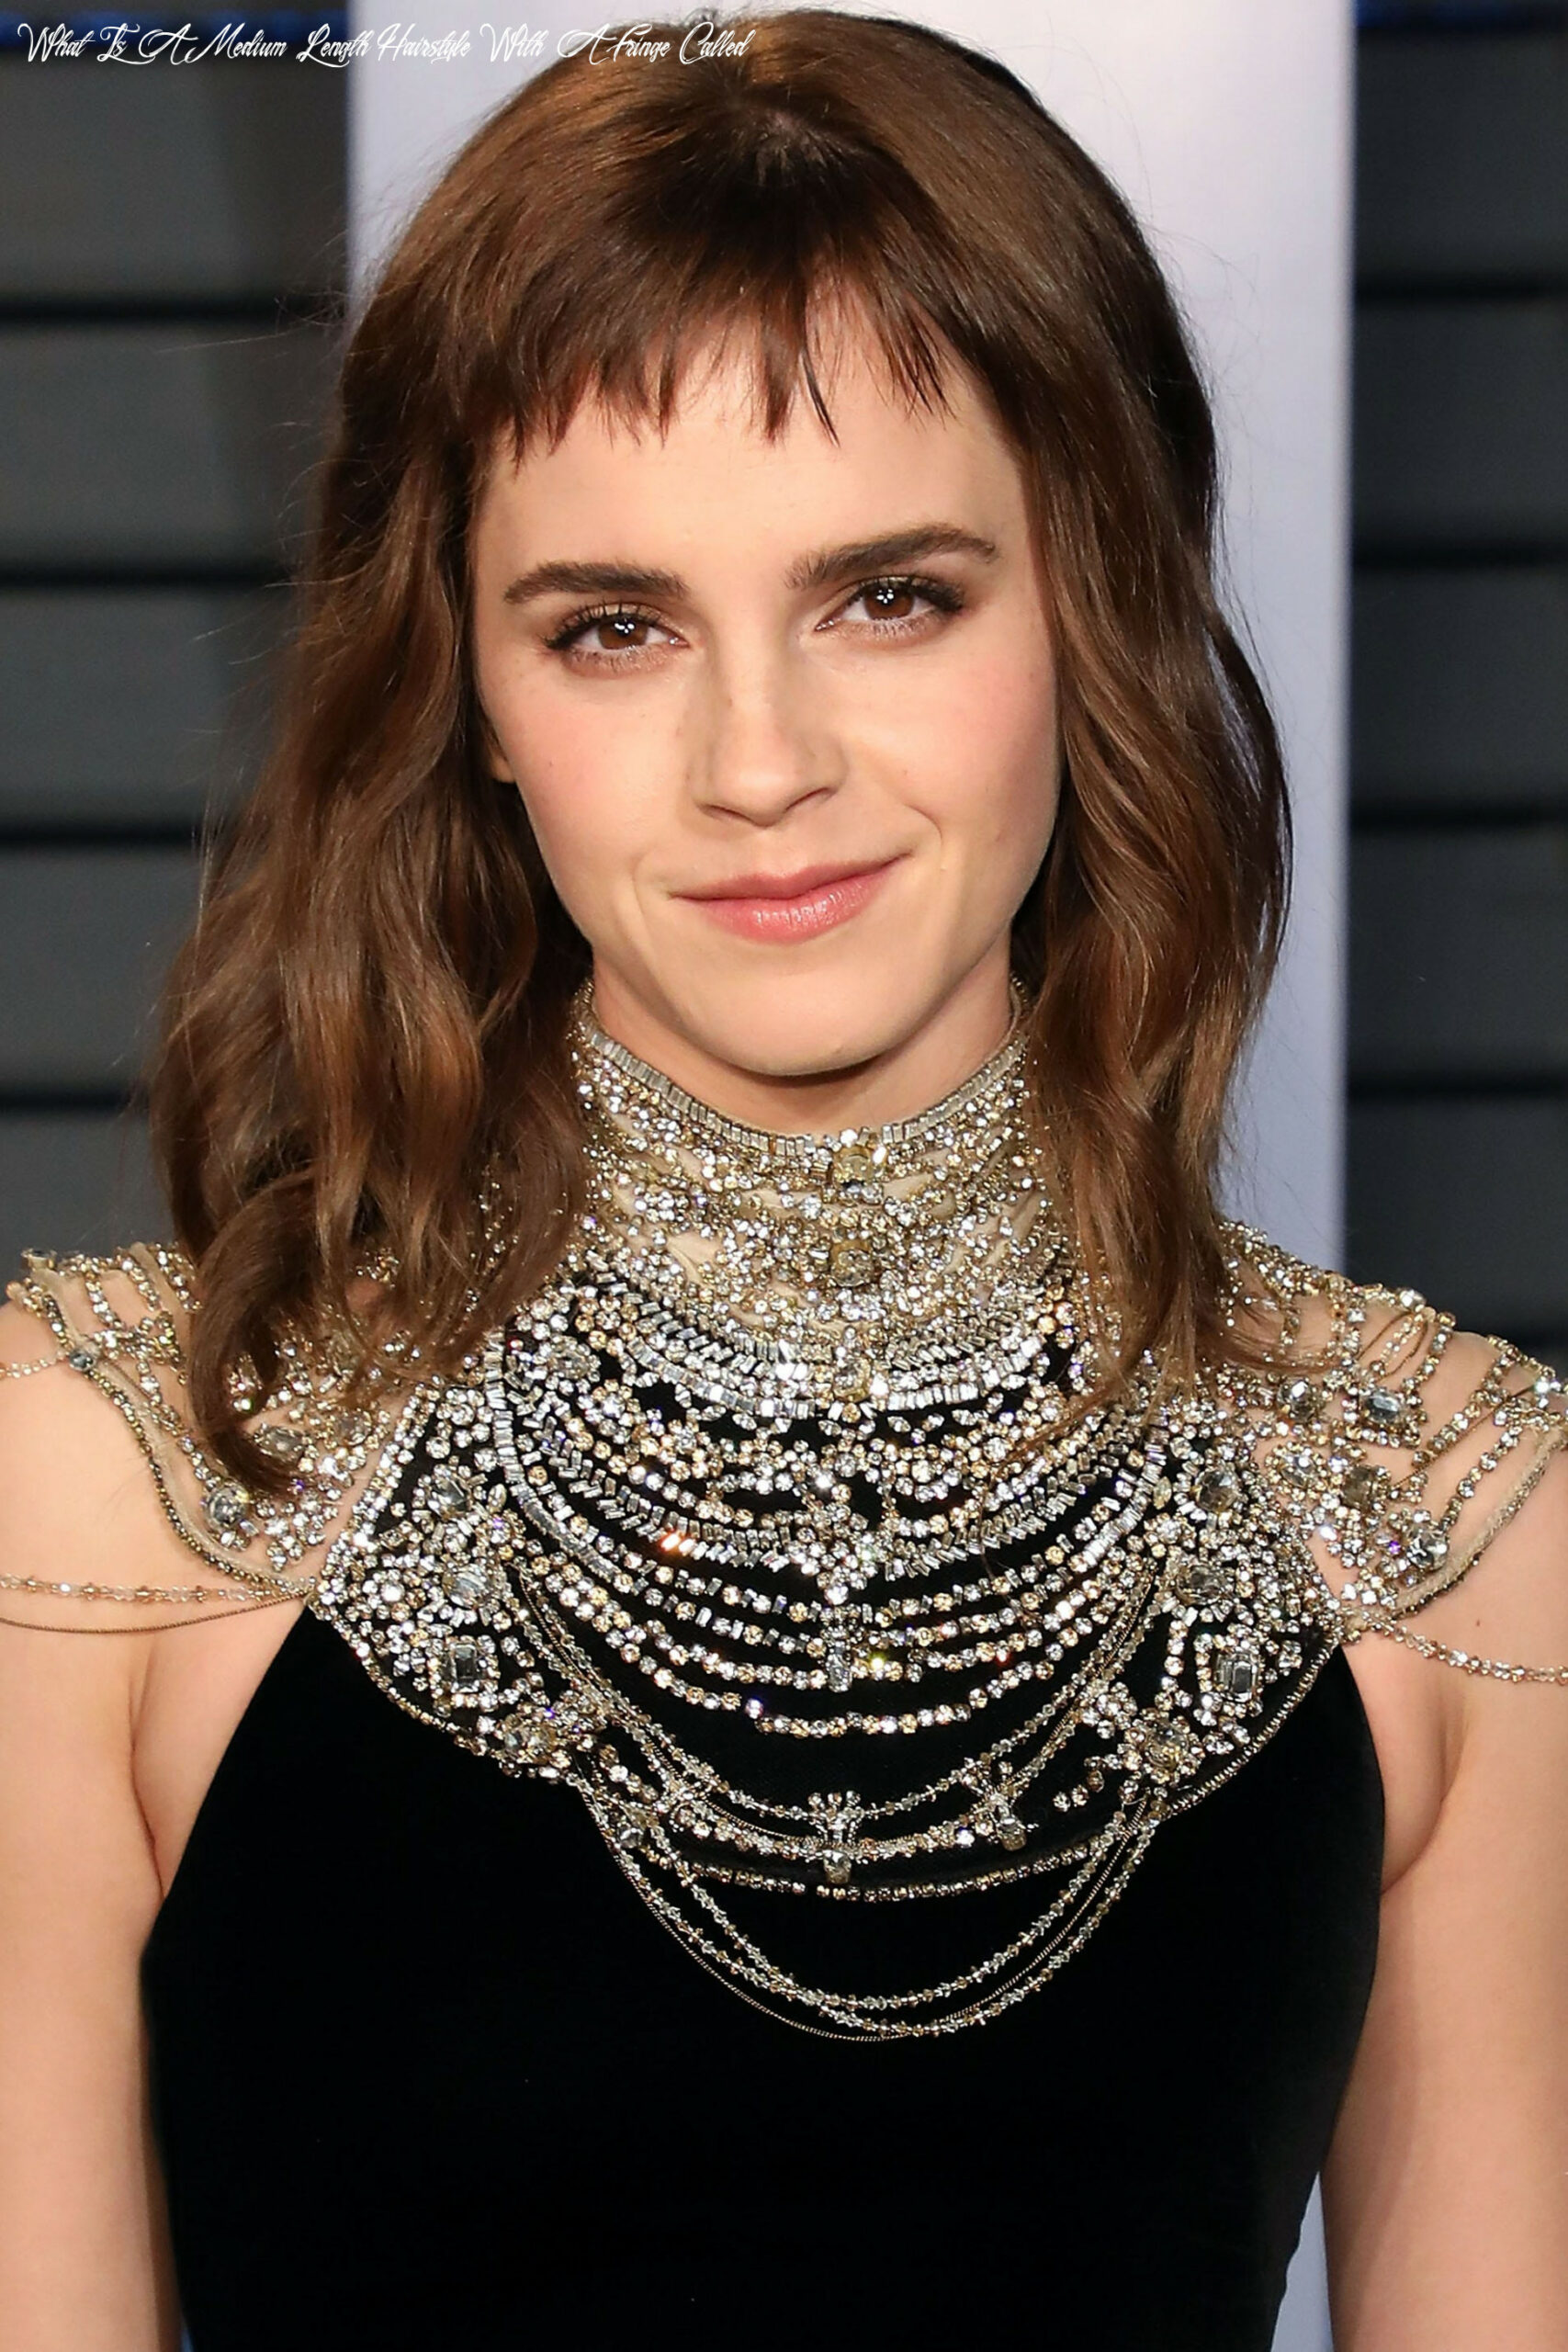 Types of bangs haircut styles that are trendy for 11 what is a medium length hairstyle with a fringe called